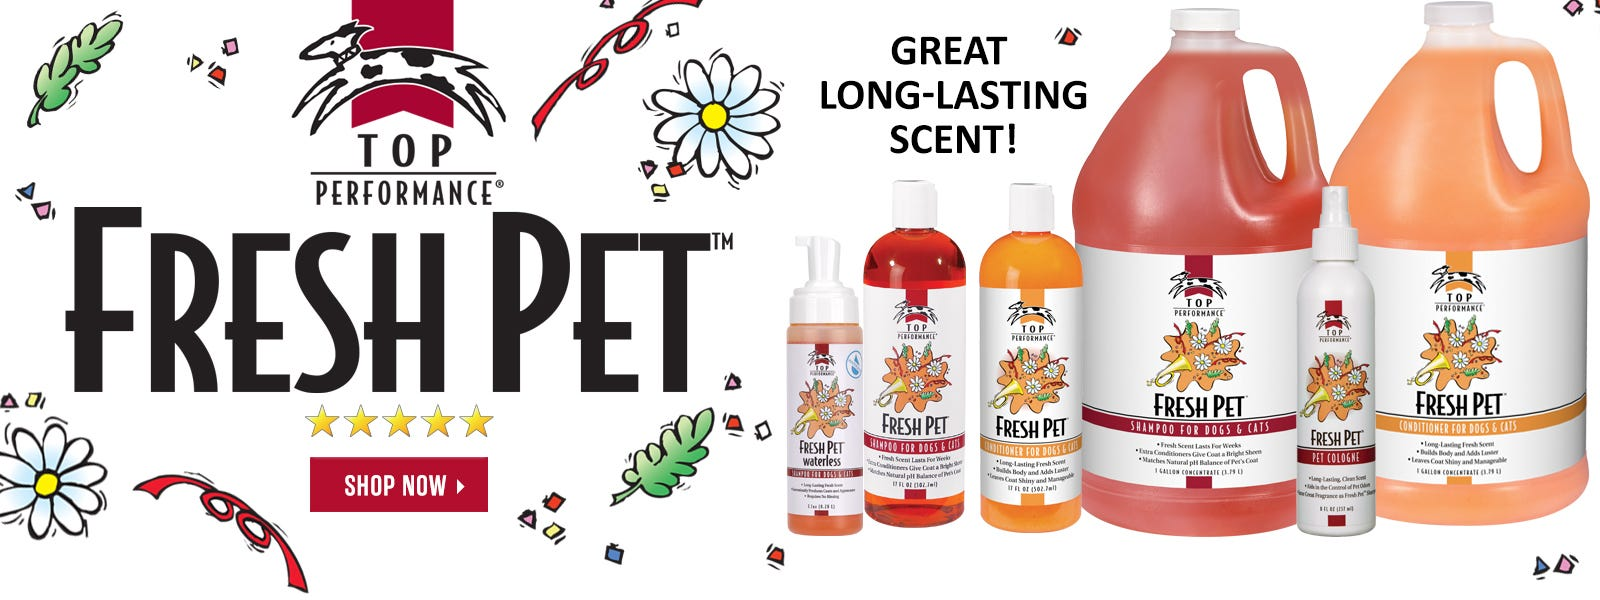 Top Performance Fresh Pet Shampoo and Conditioner